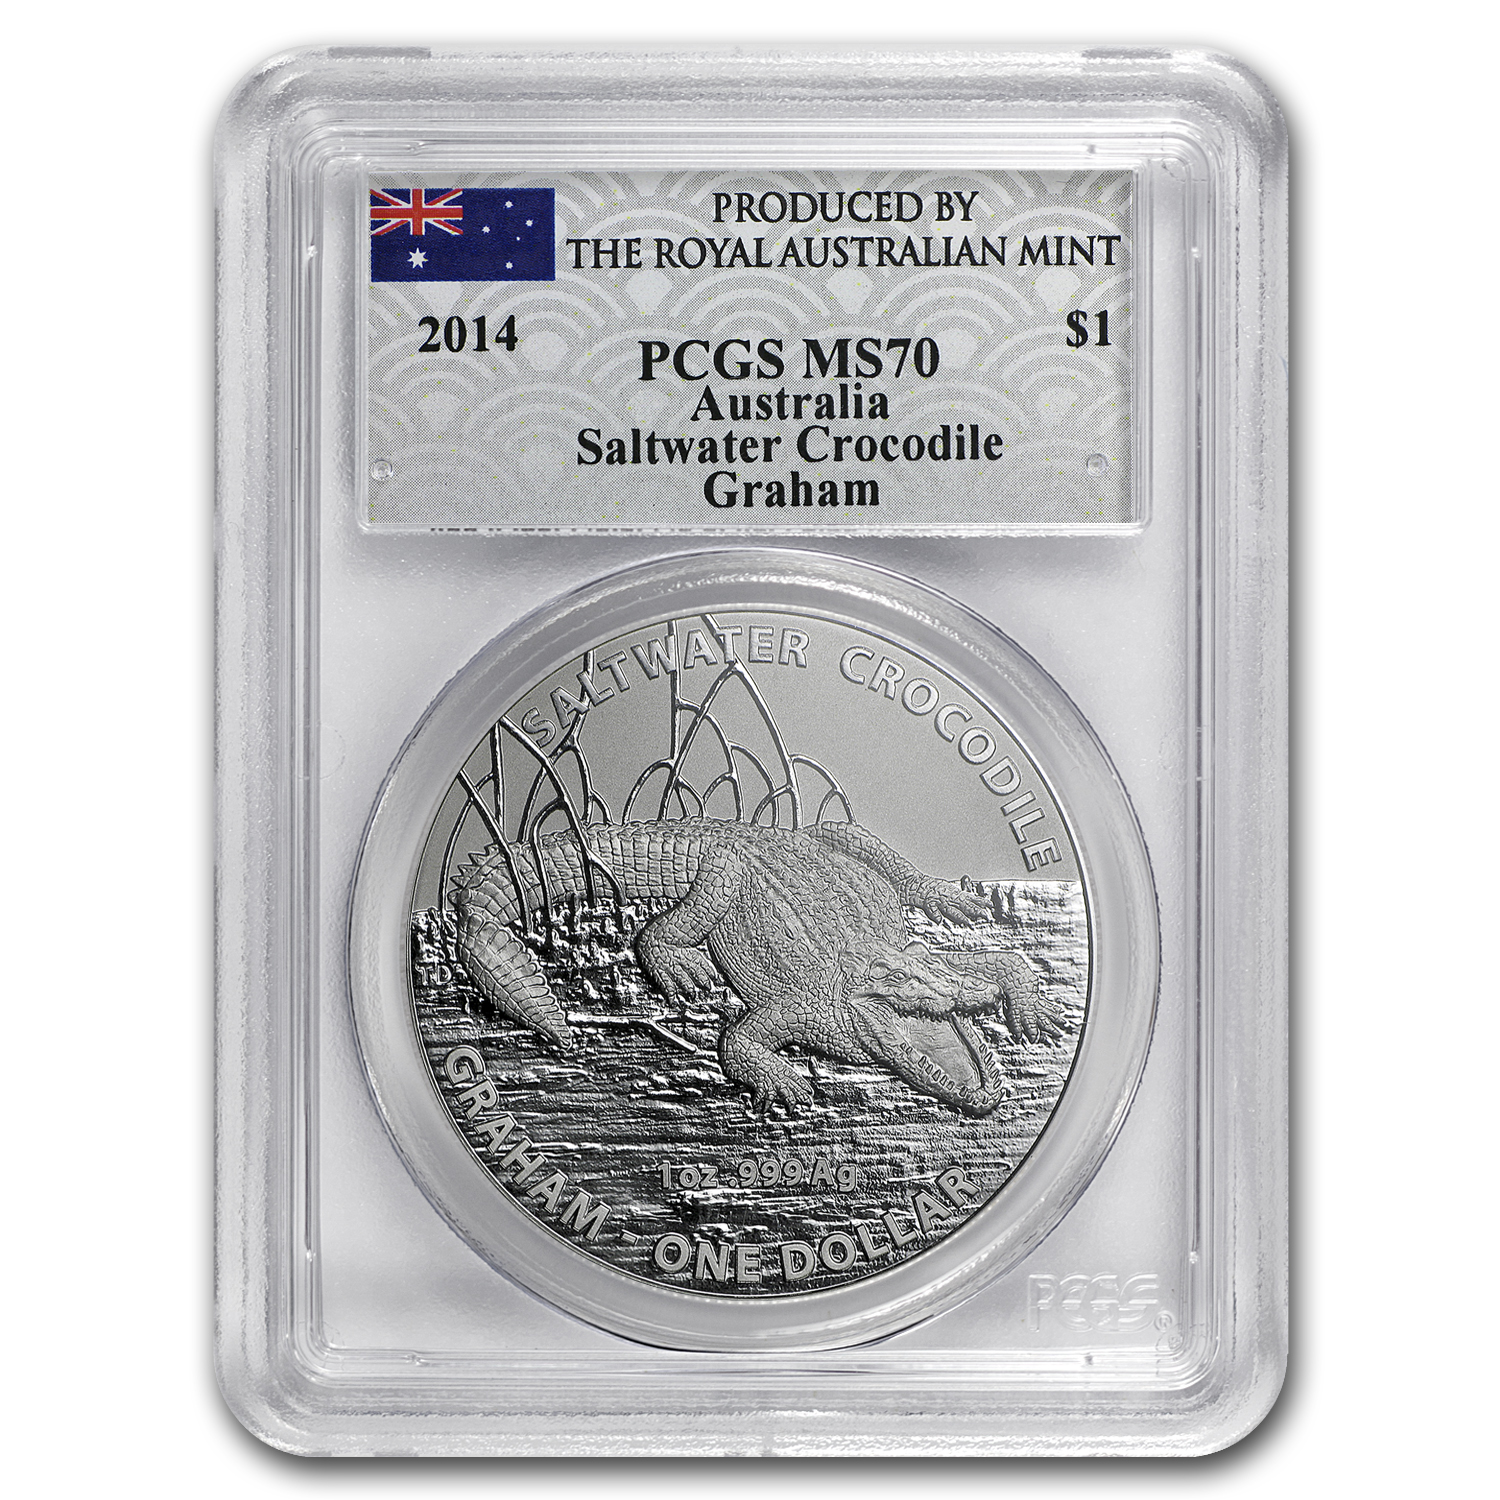 2014 1 oz Silver Australia Crocodile Graham MS-70 PGCS